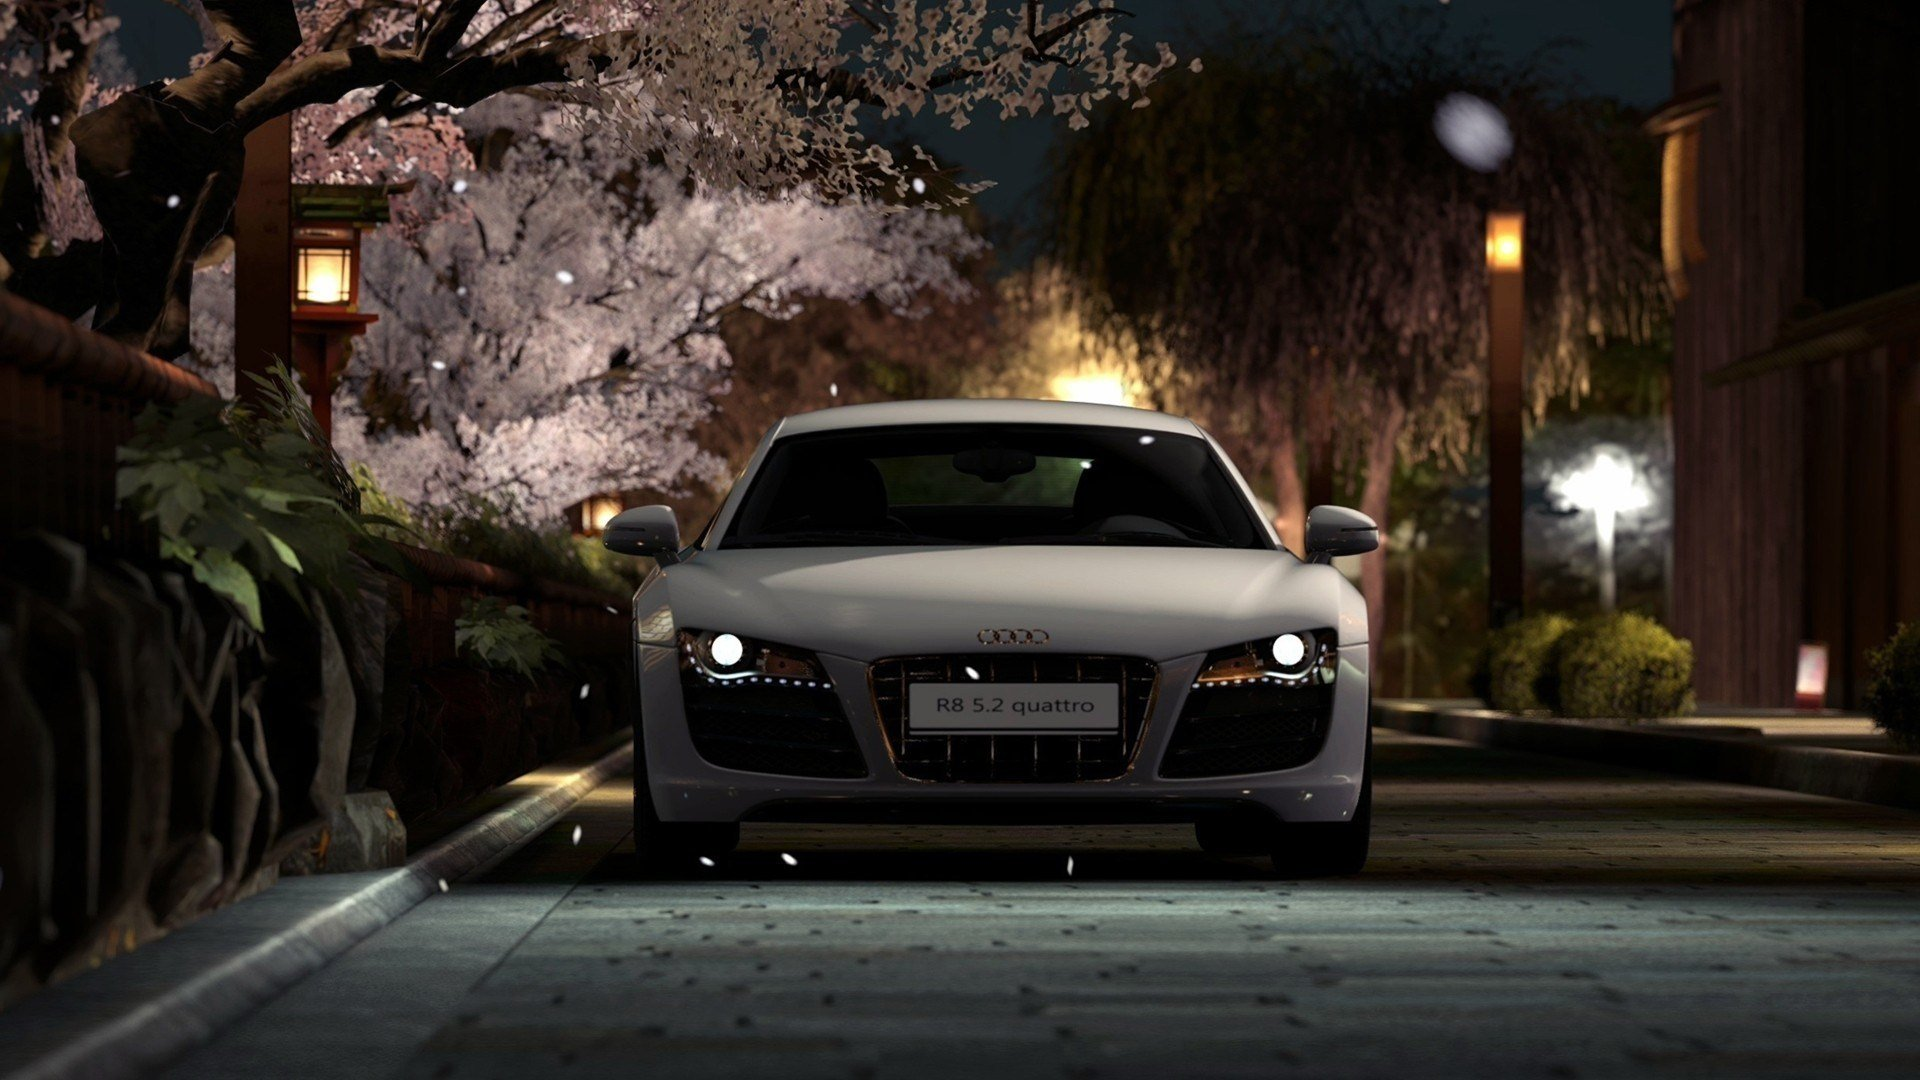 Latest Audi R8 Video Games Gran Turismo 5 Car Wallpapers Hd Free Download